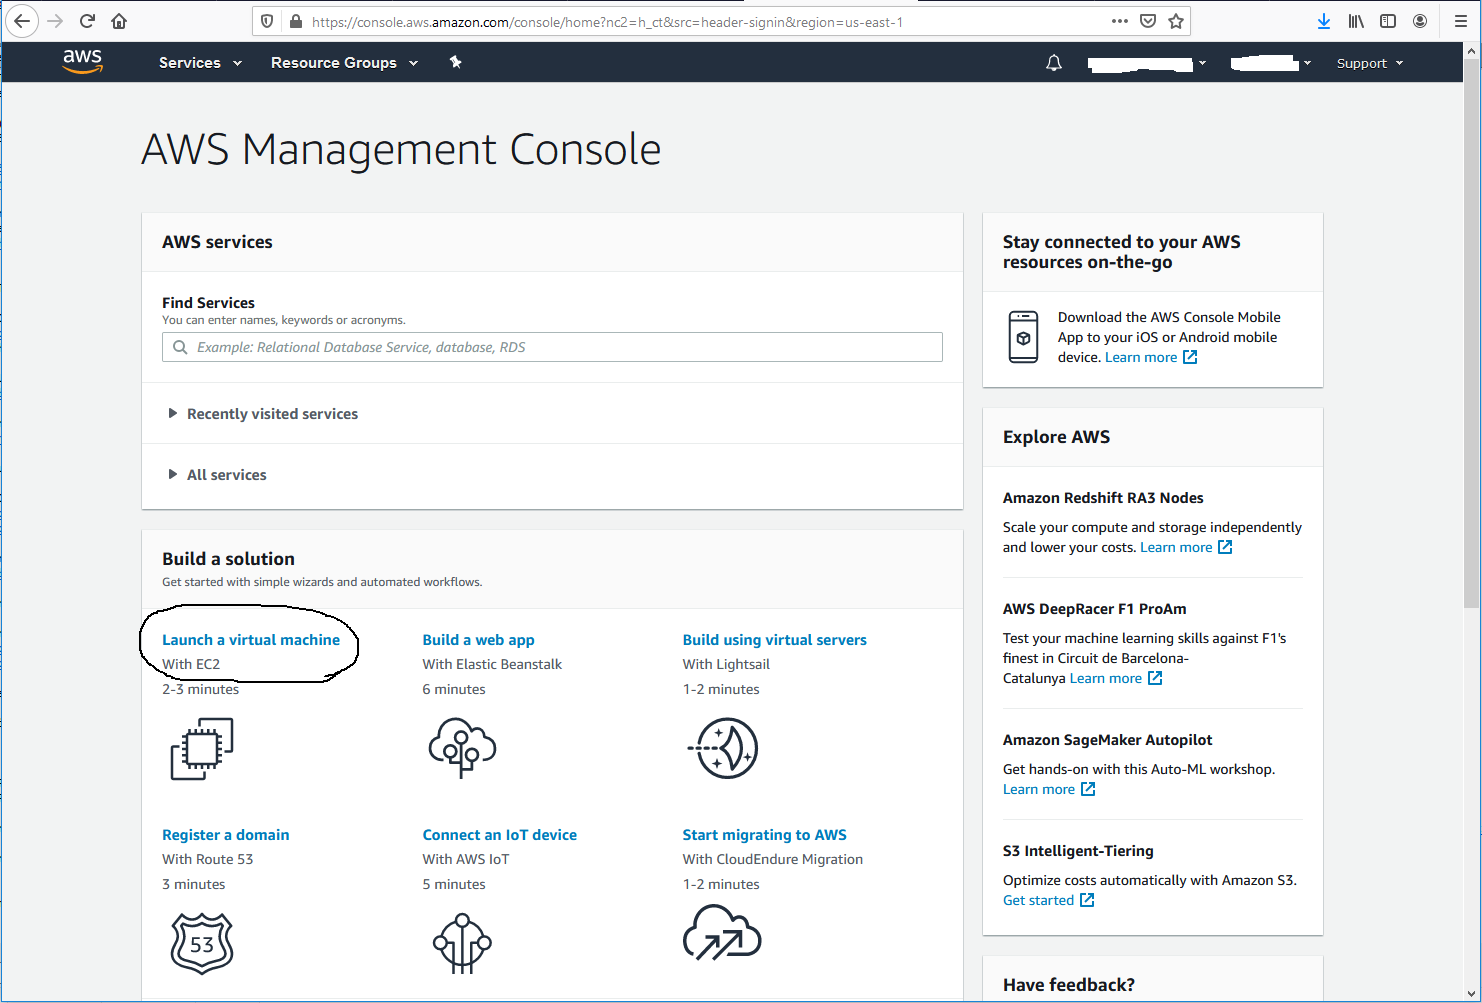 Ubuntu 20.04 LTS On AWS EC2 - AWS Console Home